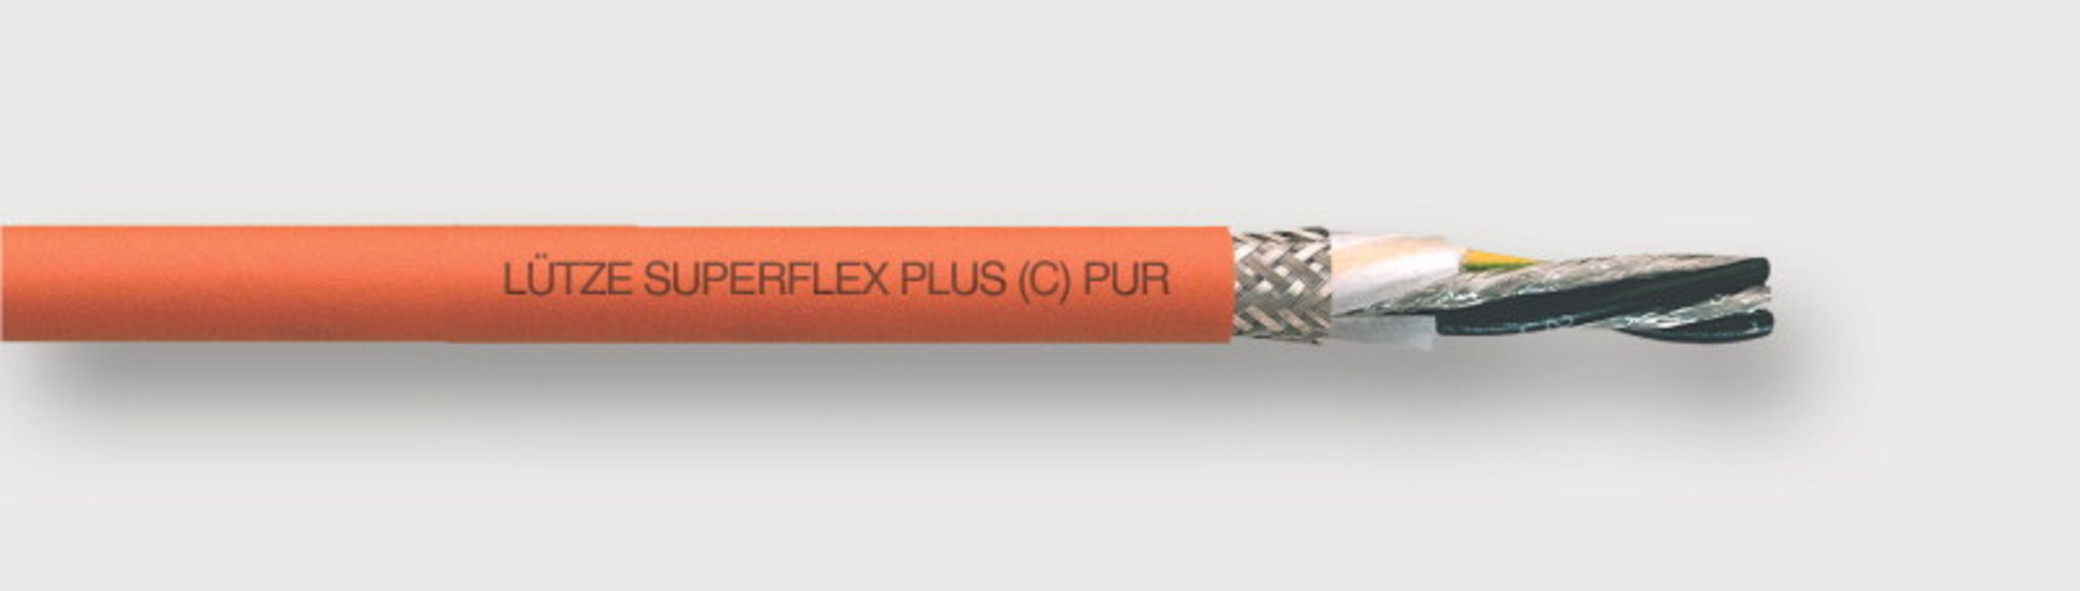 111277 - LÜTZE SUPERFLEX® PLUS M (C) PUR SERVO 0.6/1 kV Supply line for Bosch Rexroth and other systems For highest requirements